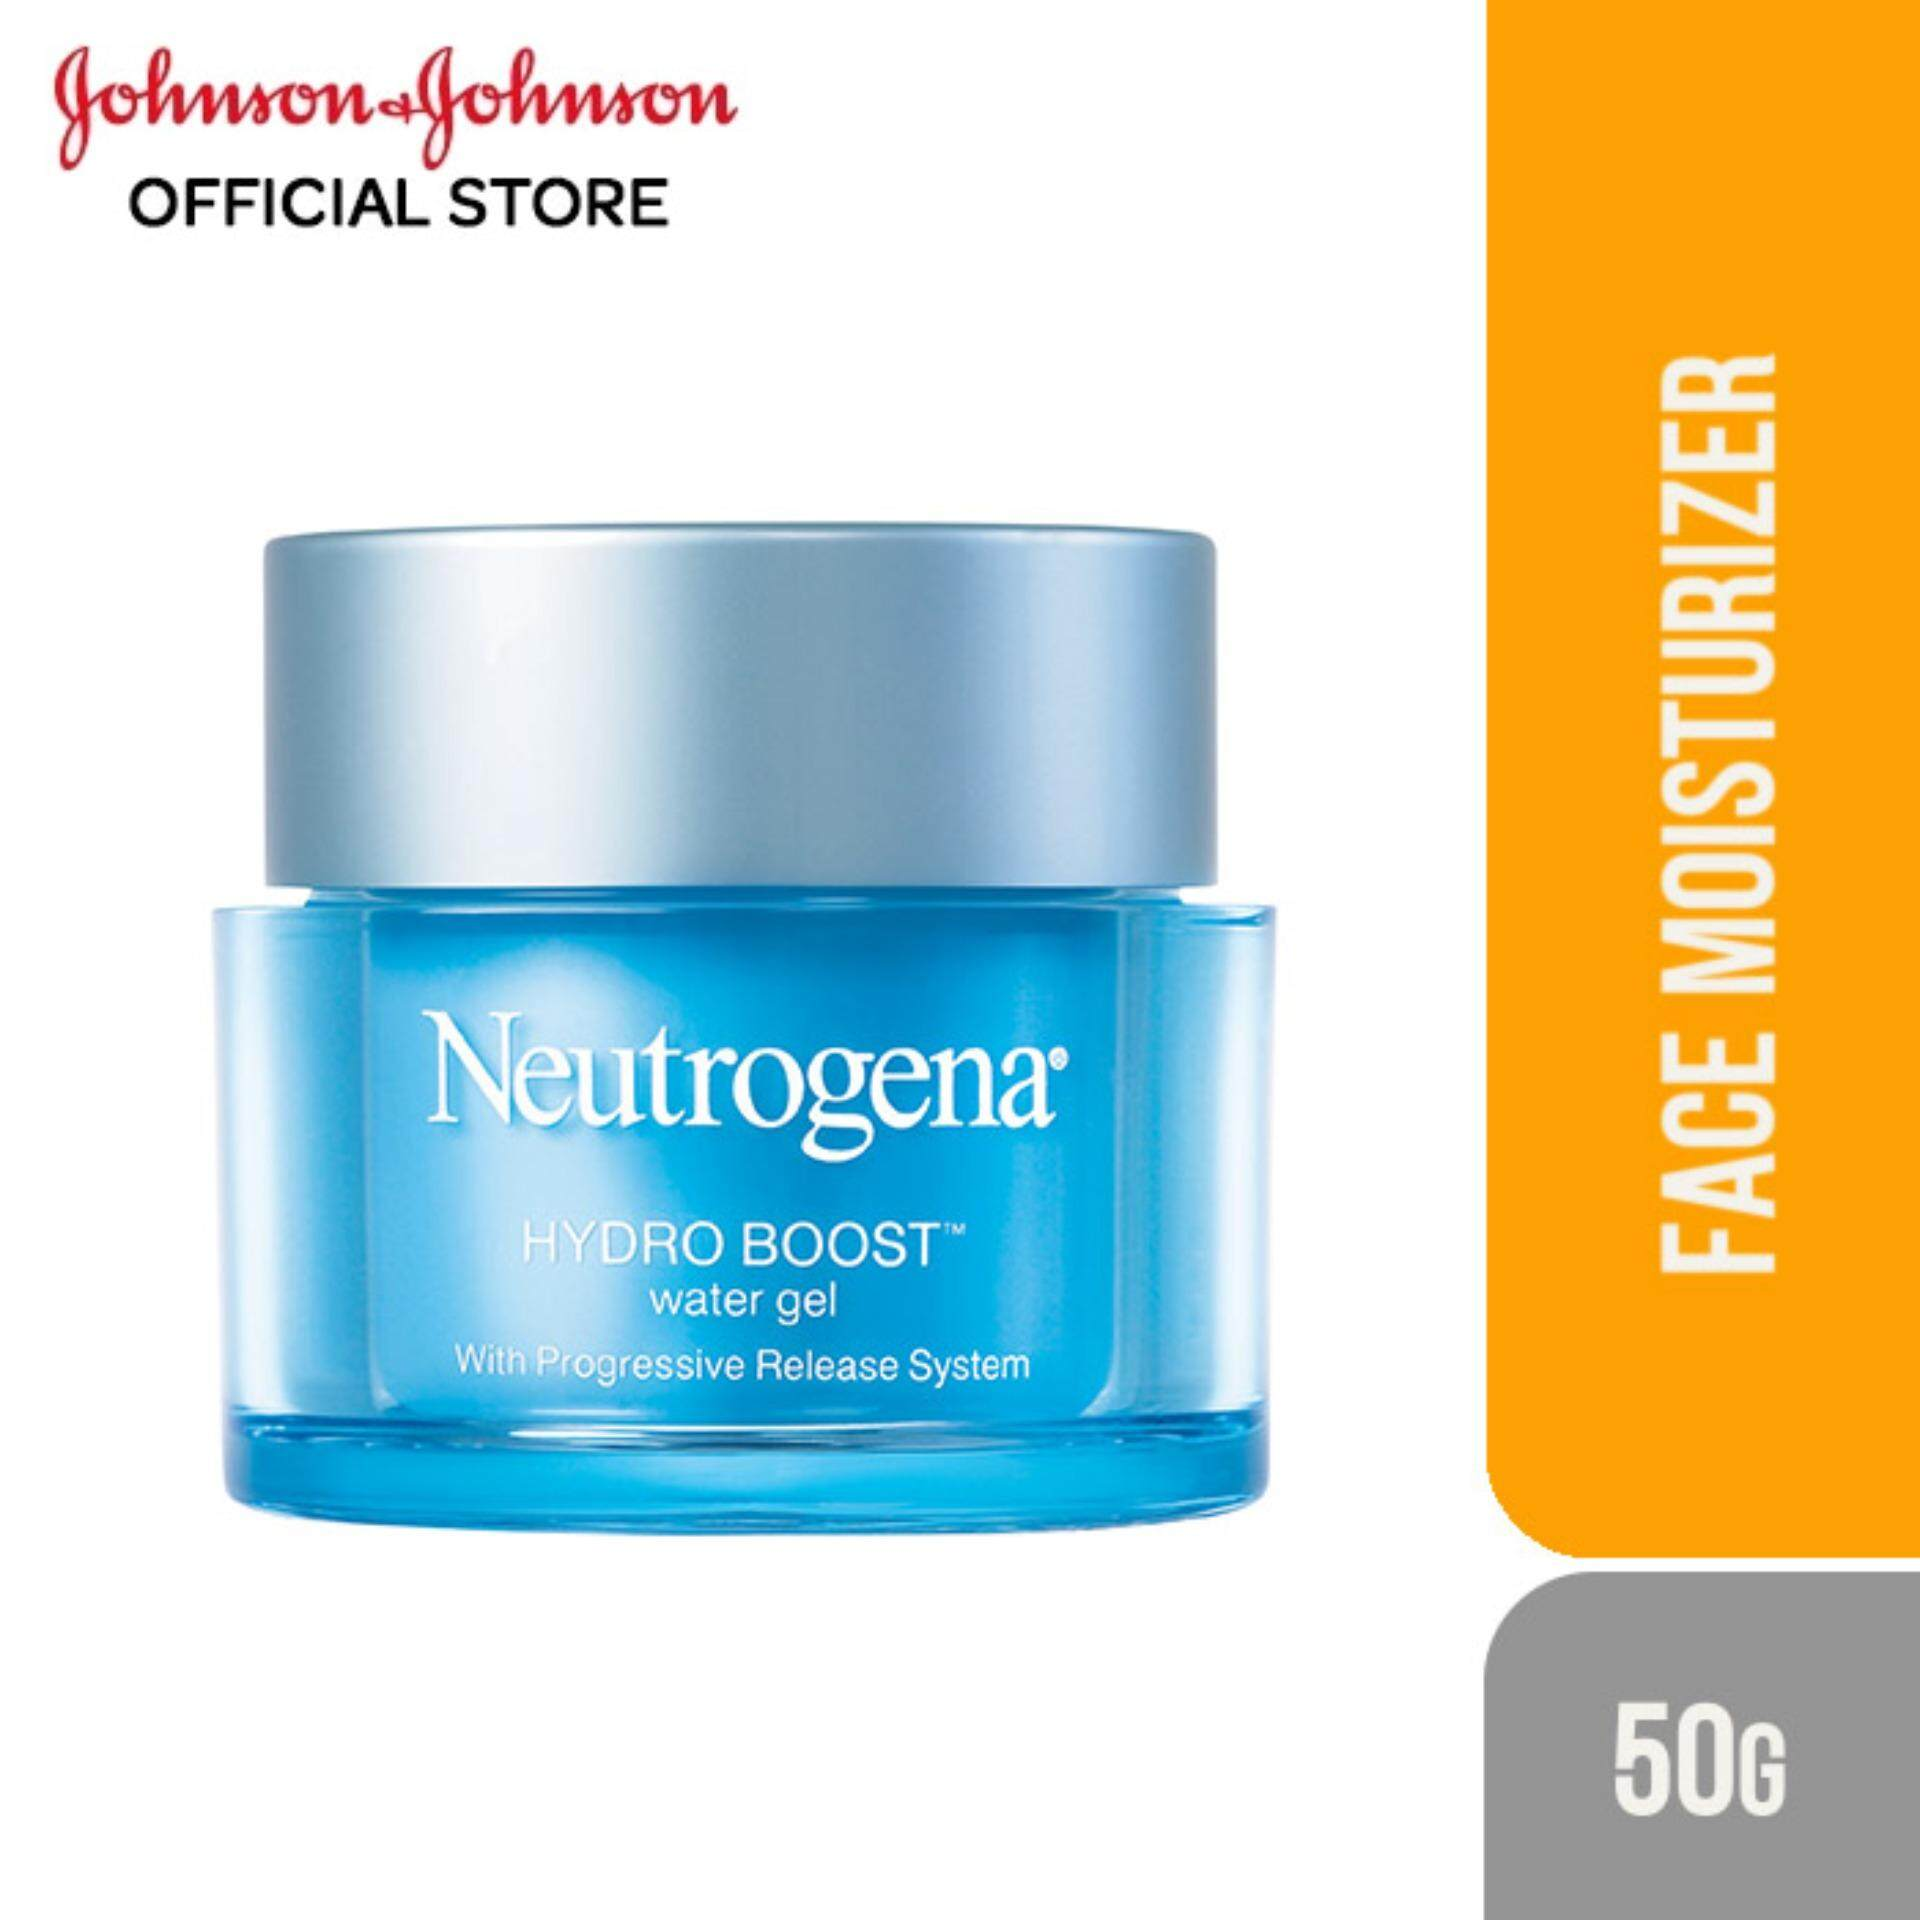 Neutrogena Hydro Boost Water Gel 50g By Johnson & Johnson.